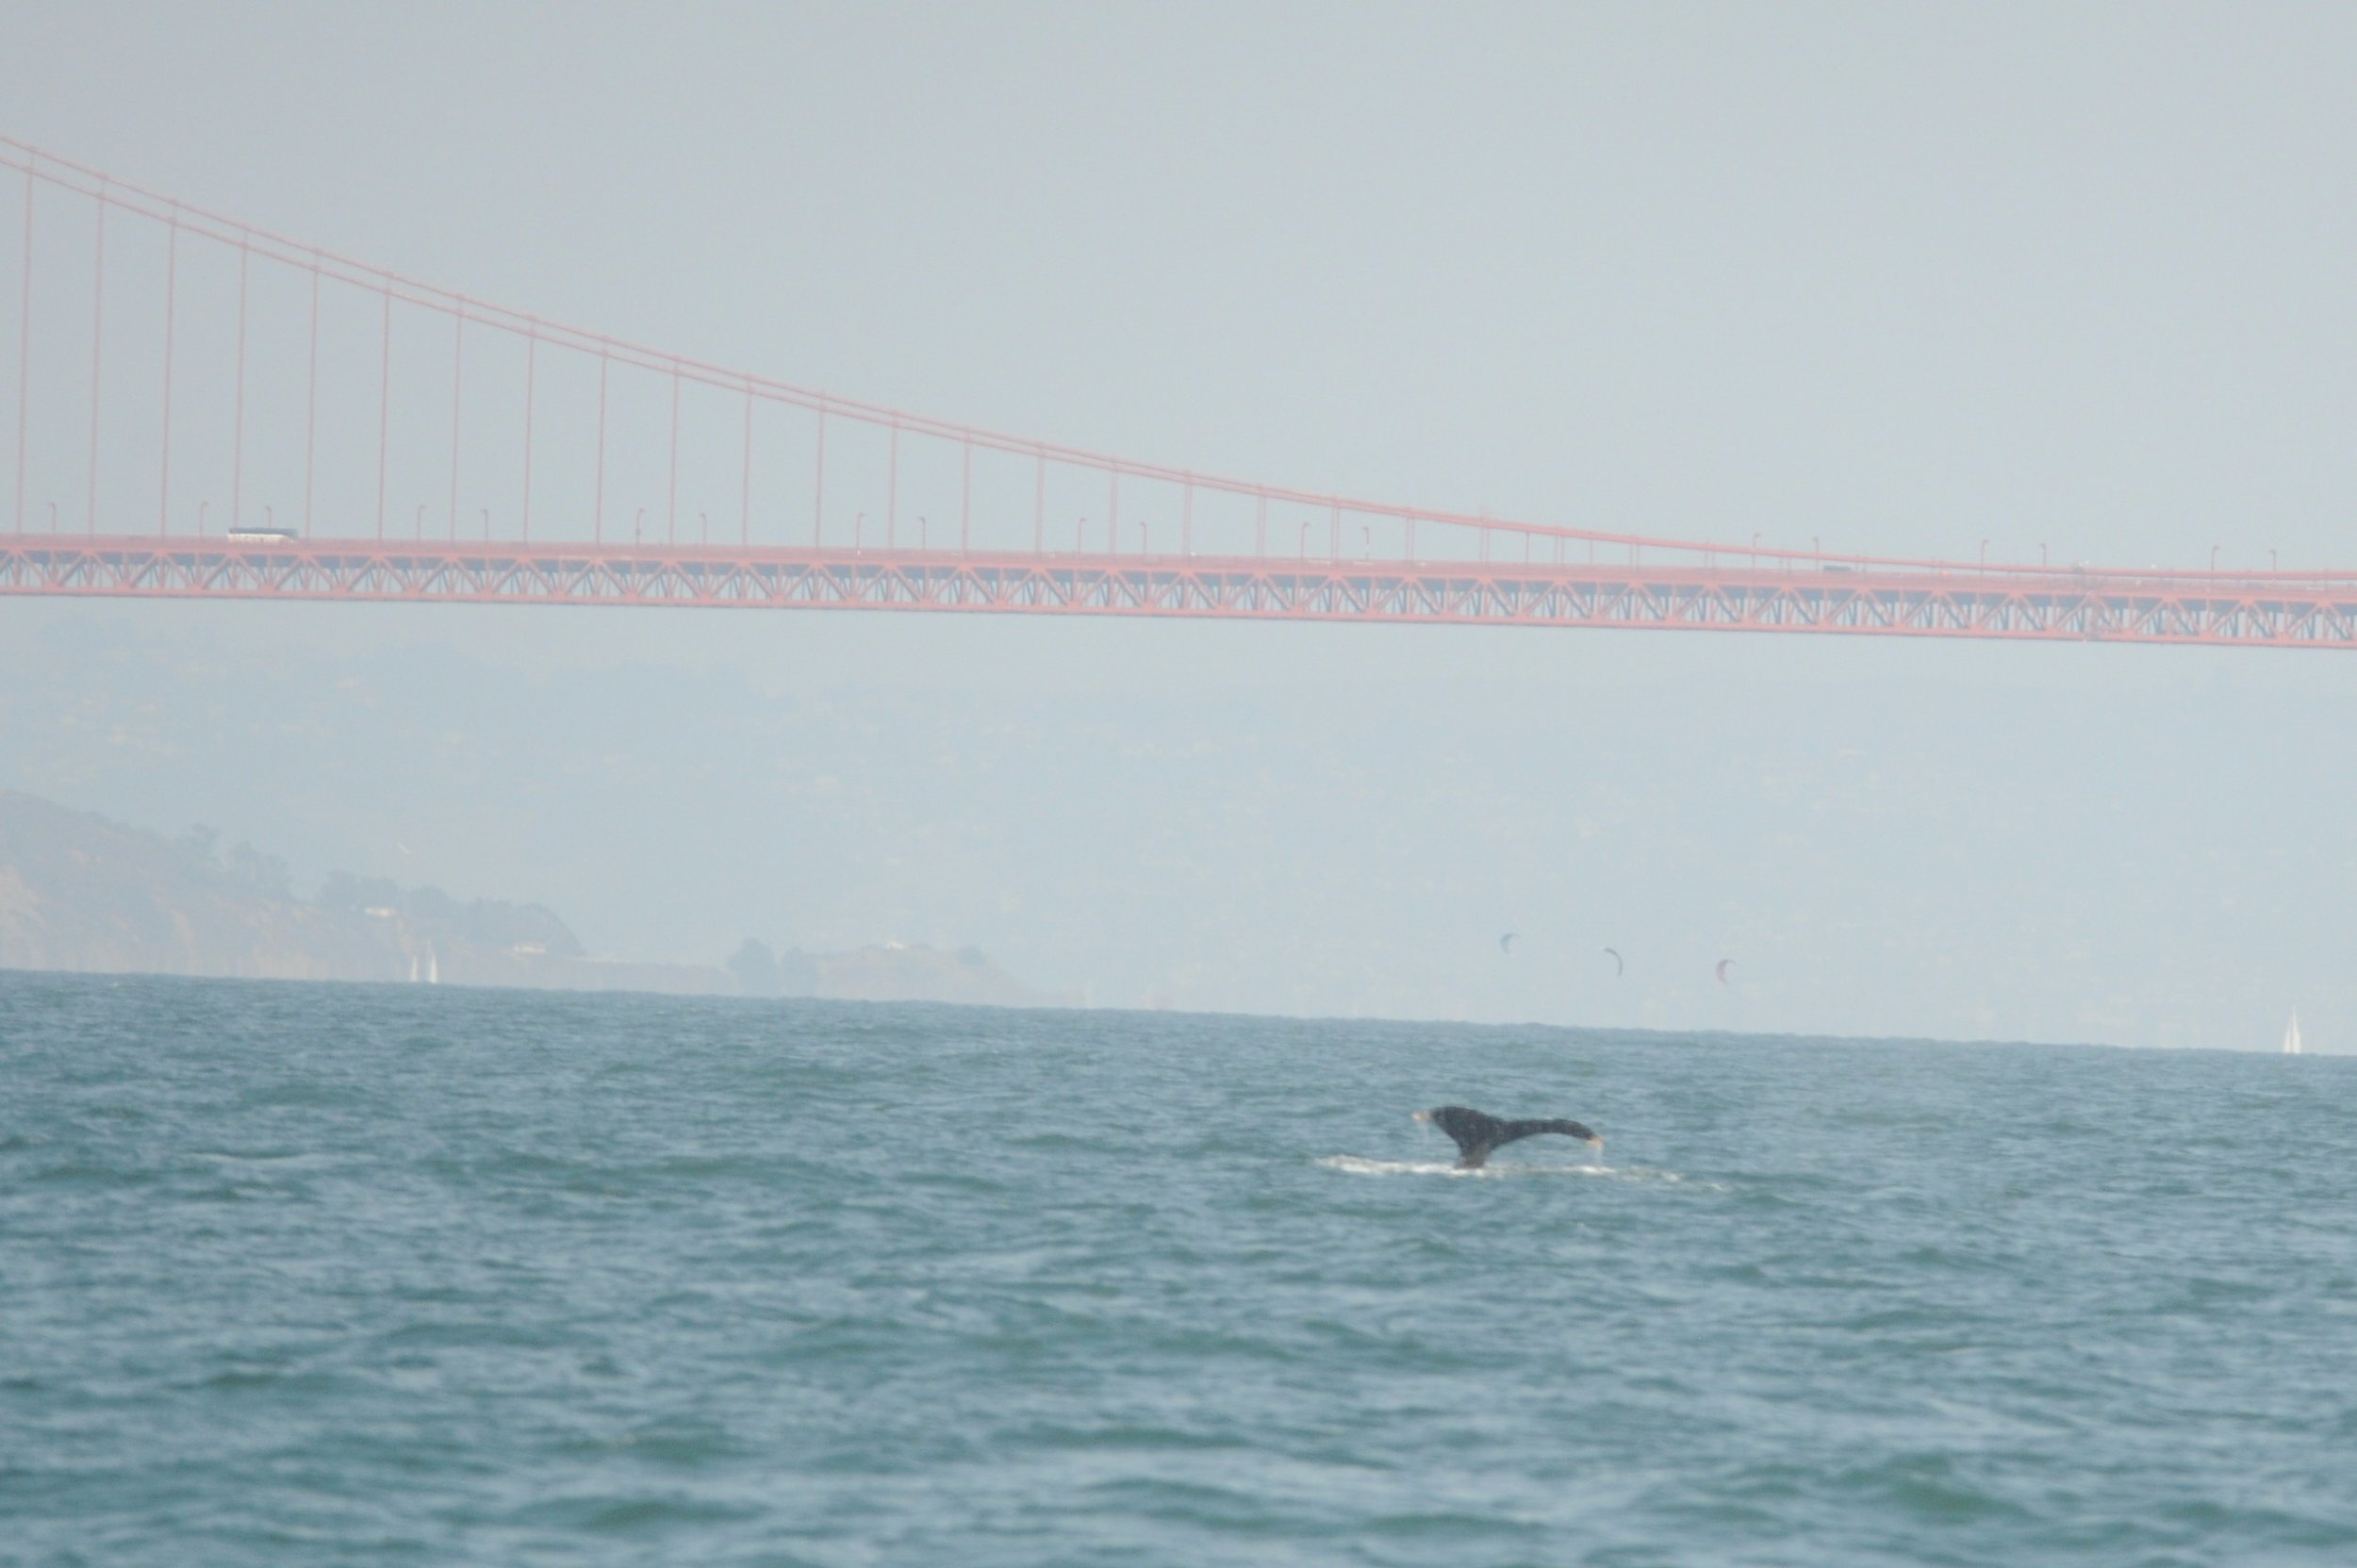 Humpback whale outside the Golden Gate Bridge.